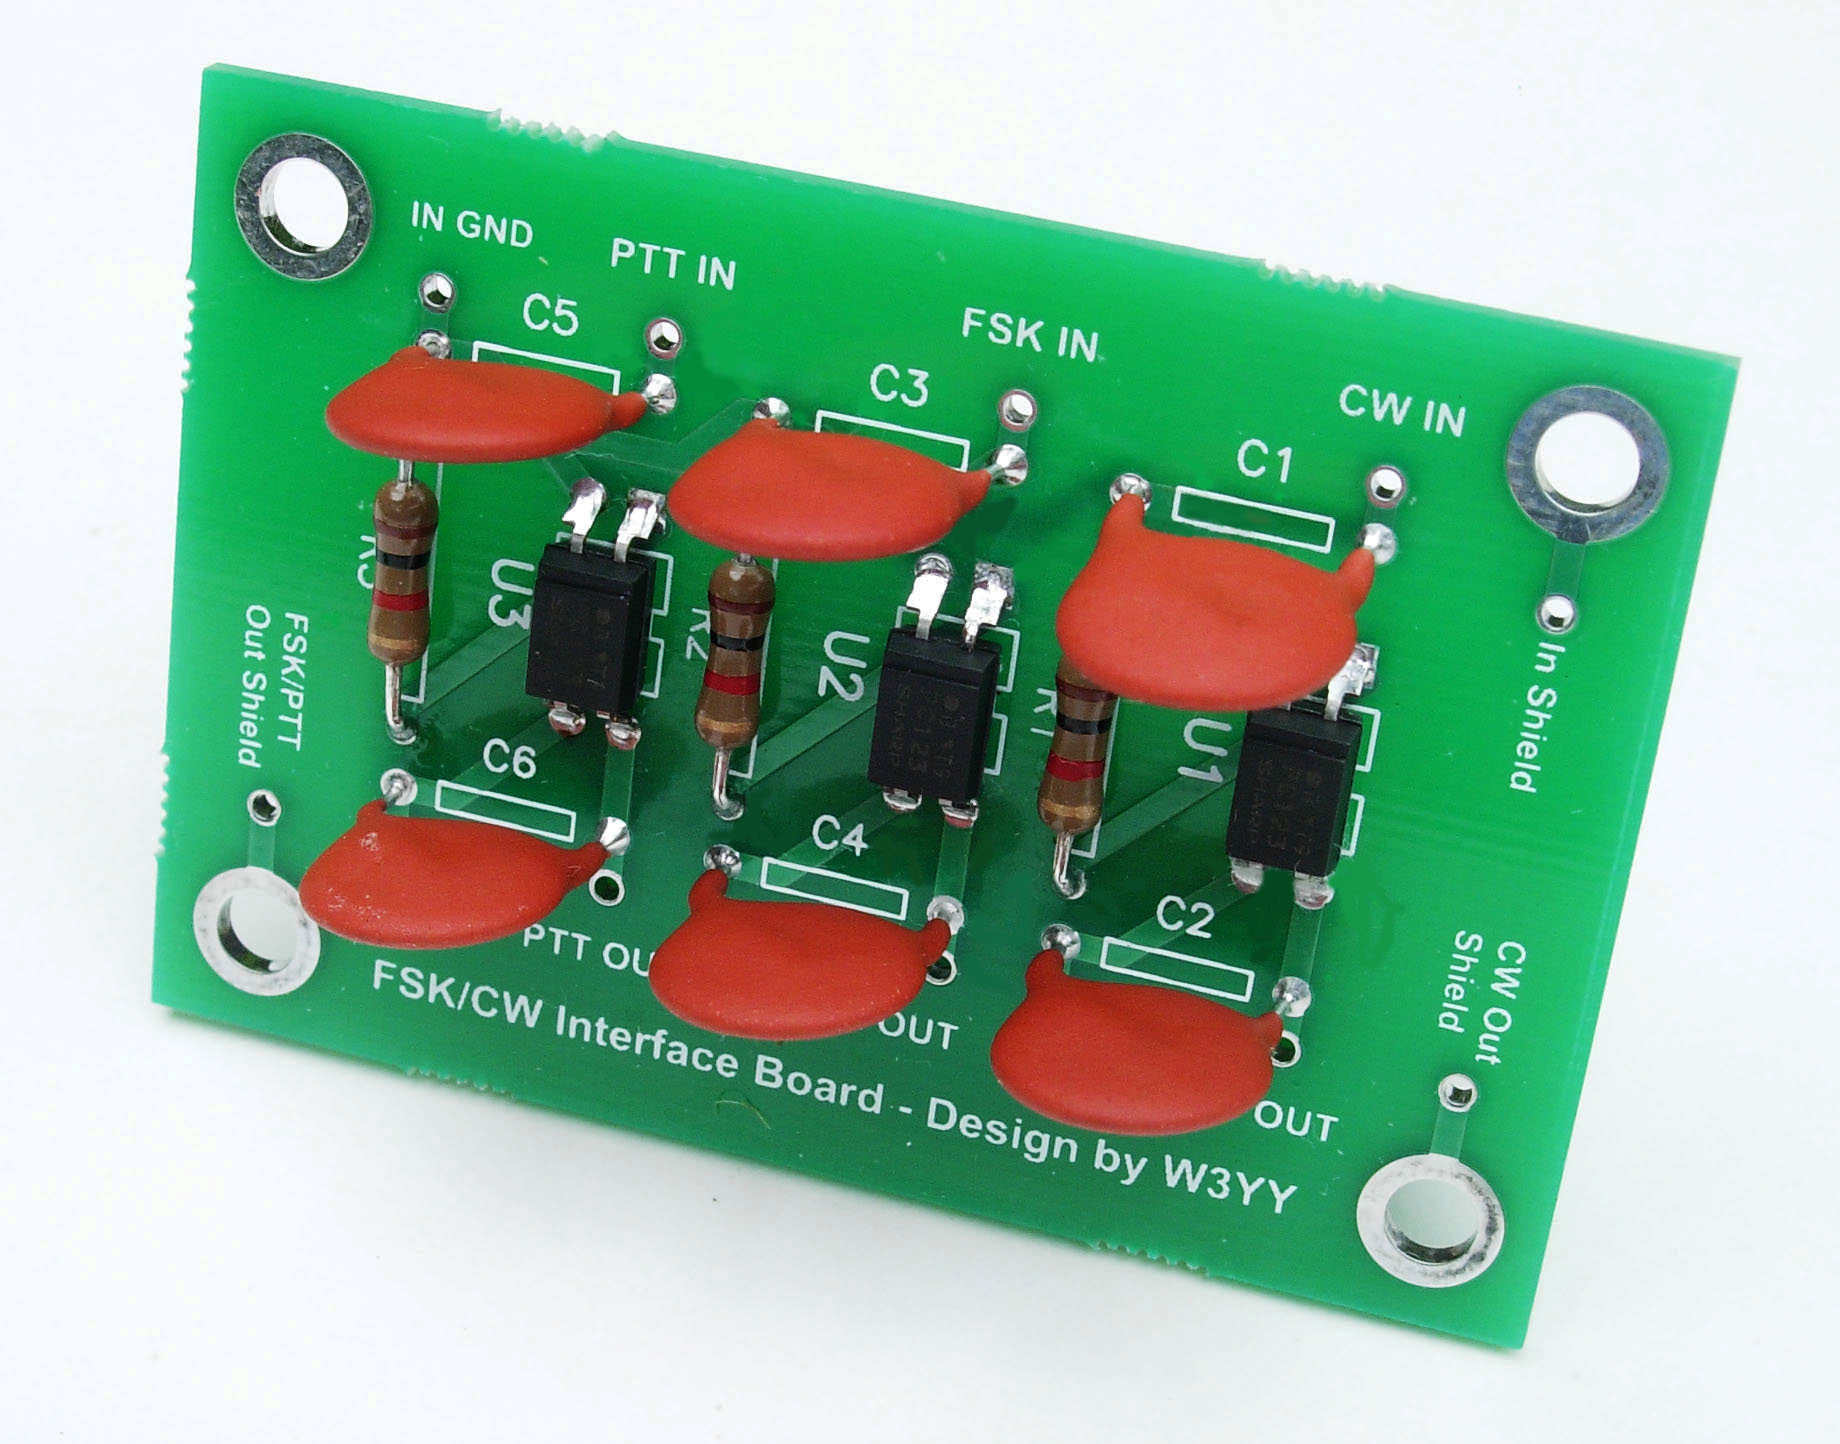 Fsk Cw Pc Interface For Keying Ham Transmitters Electronic Keyer Circuit Optically Isolated And Transceivers